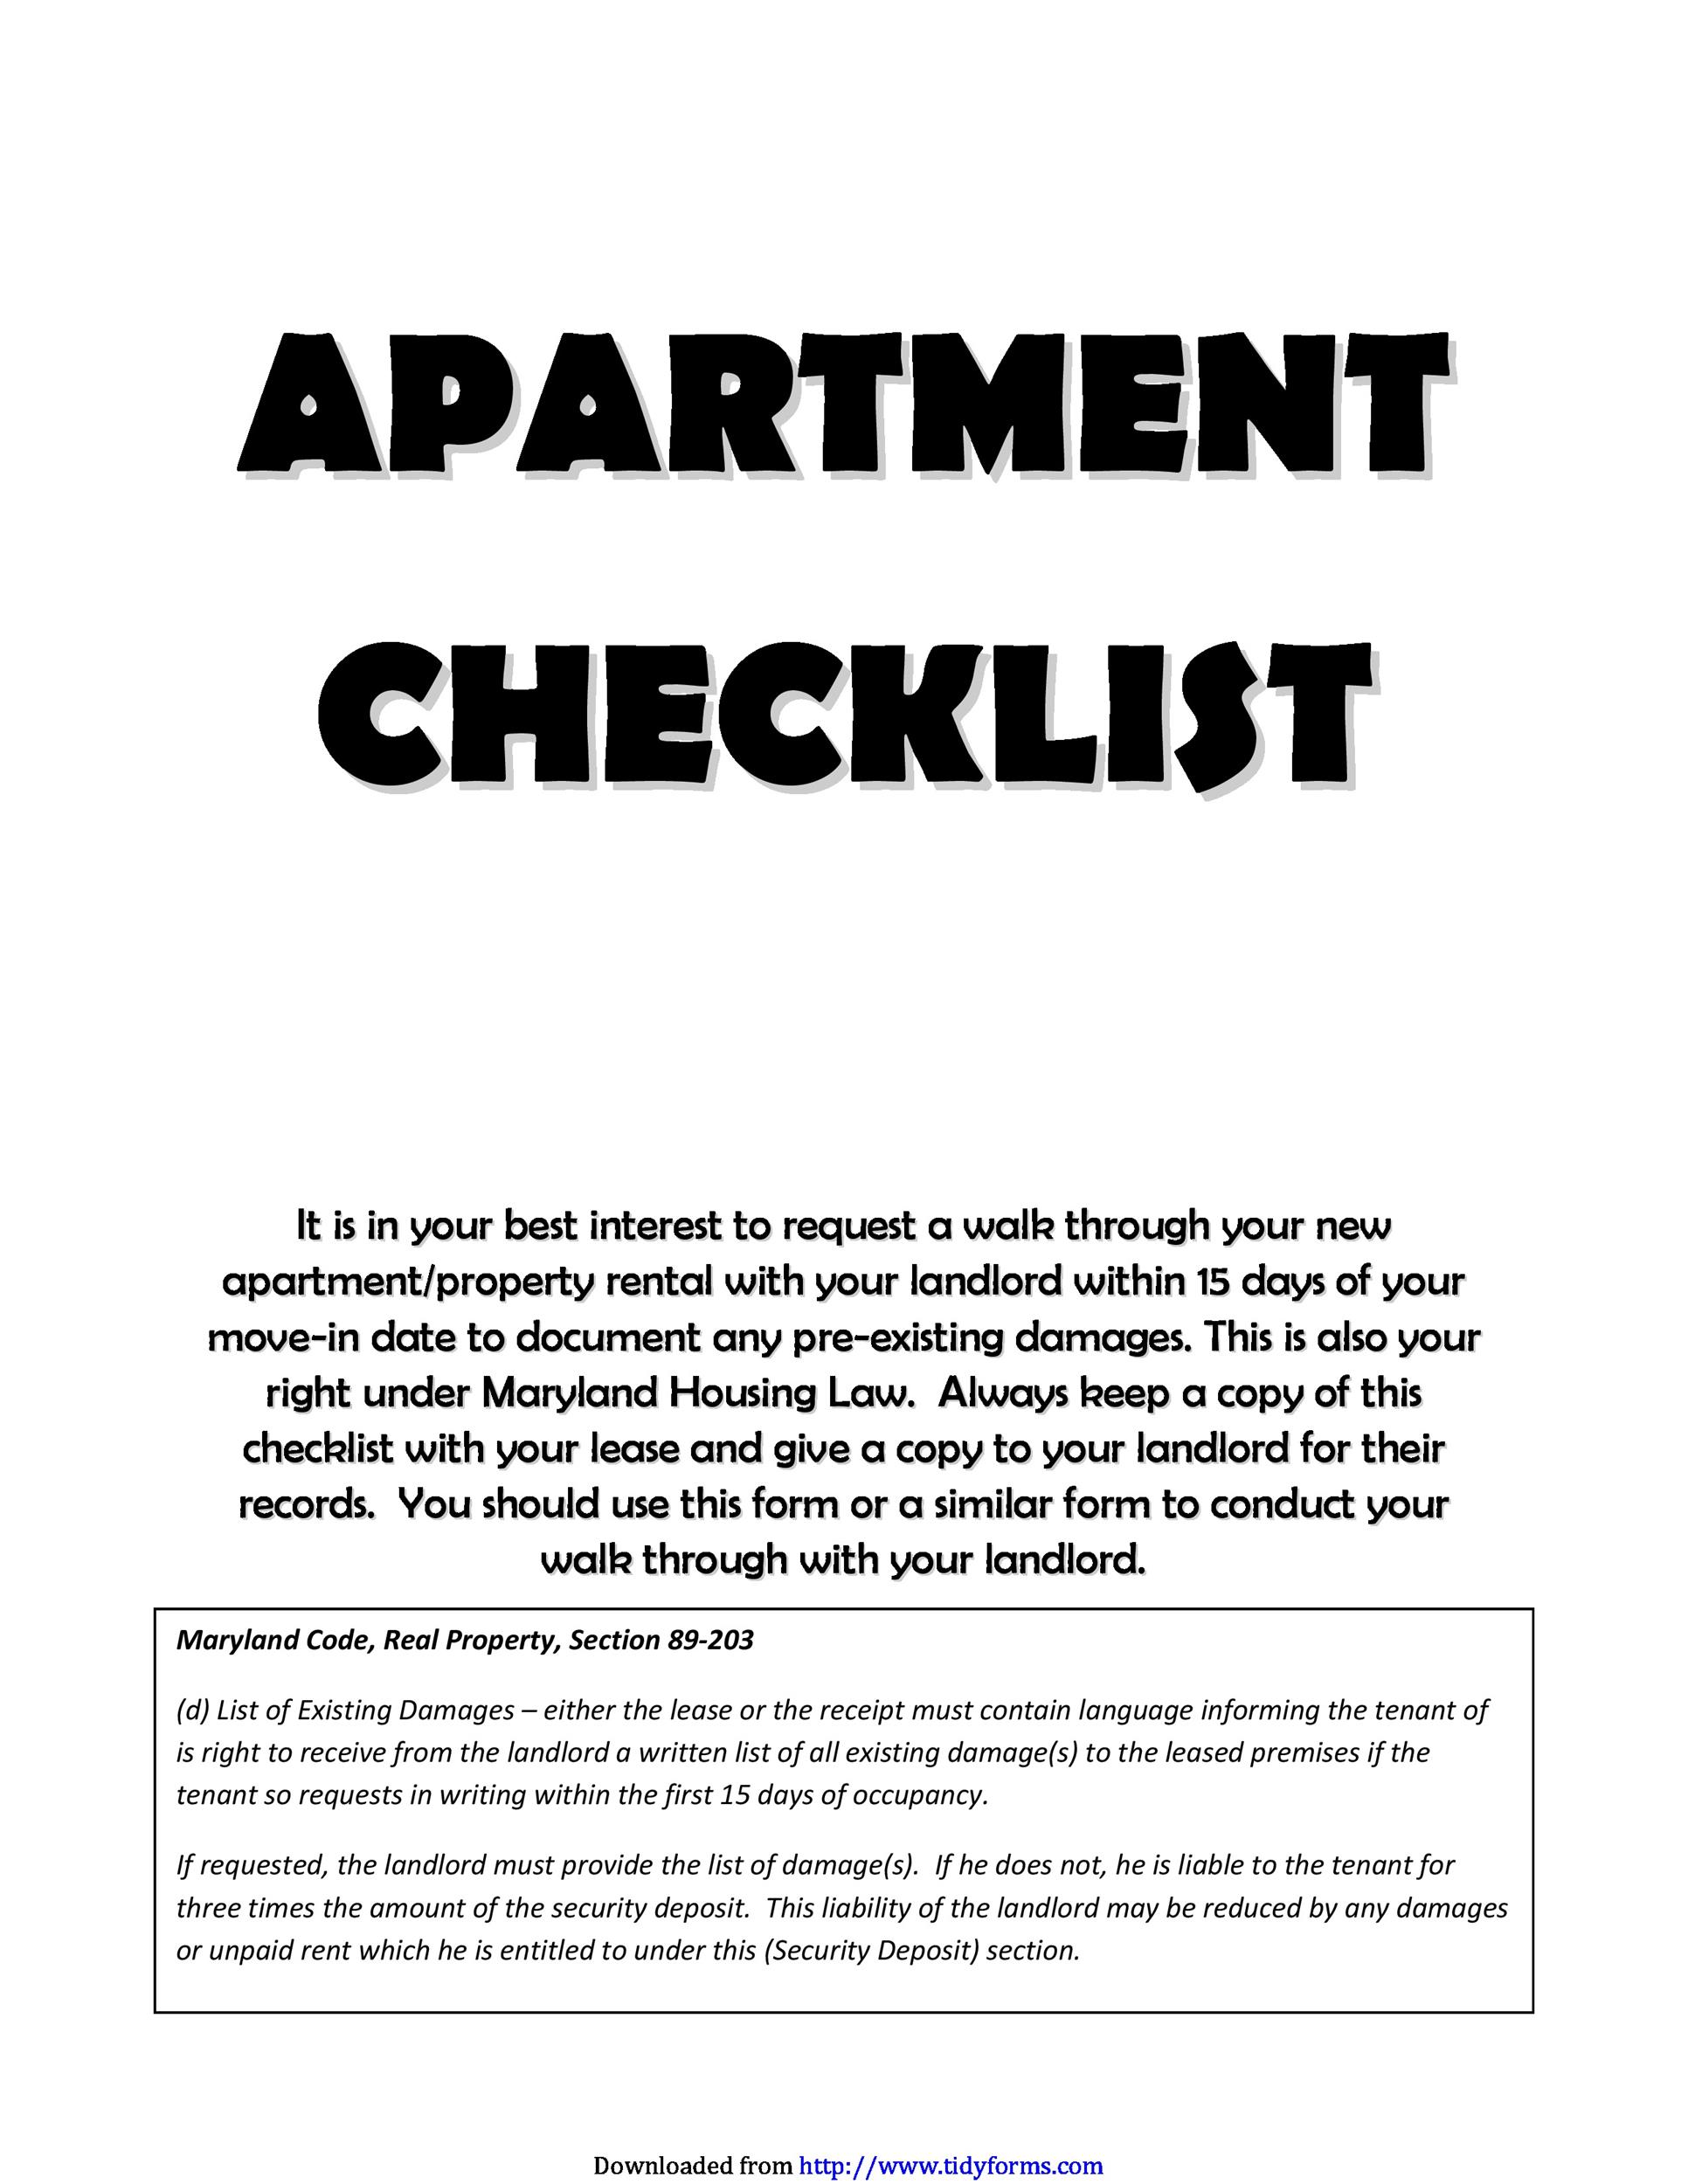 Free apartment checklist 13